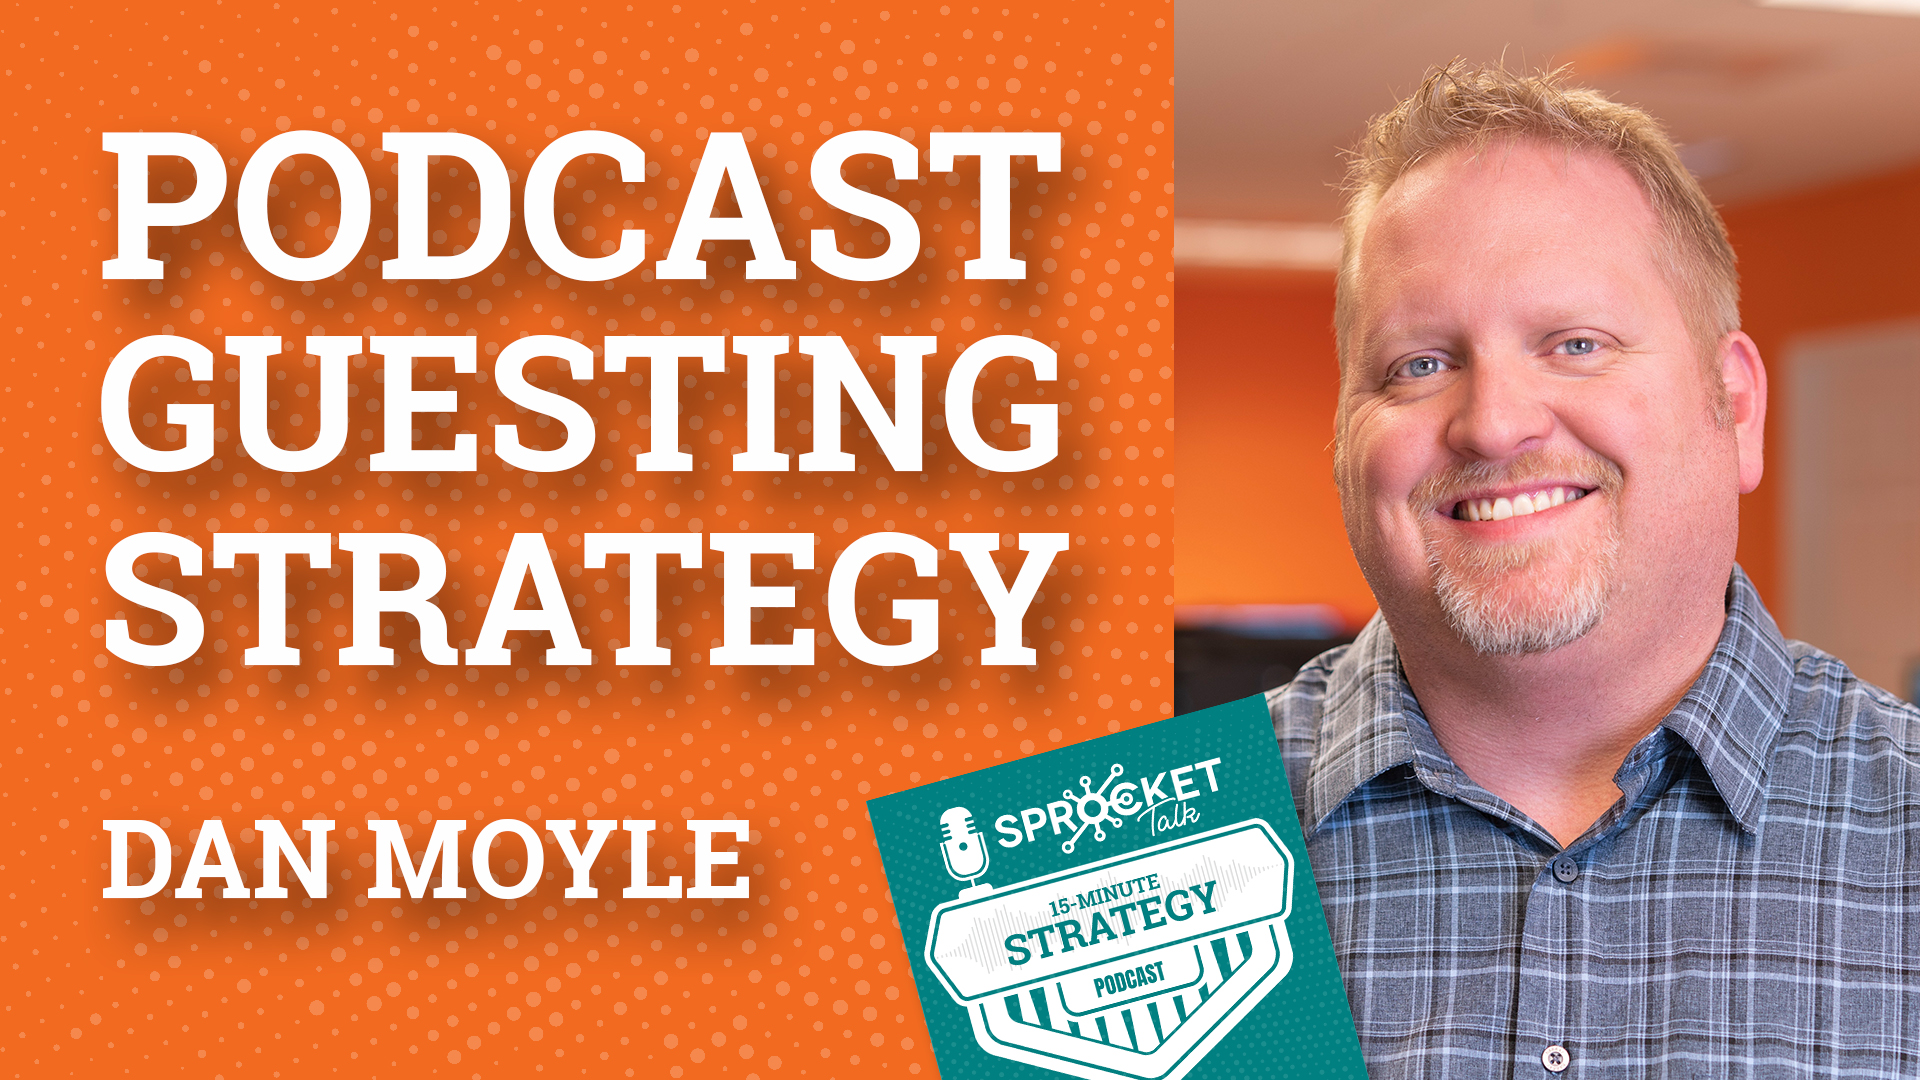 Dan Moyle Strategy of Podcast Guesting | 15-Minute Strategy Podcast